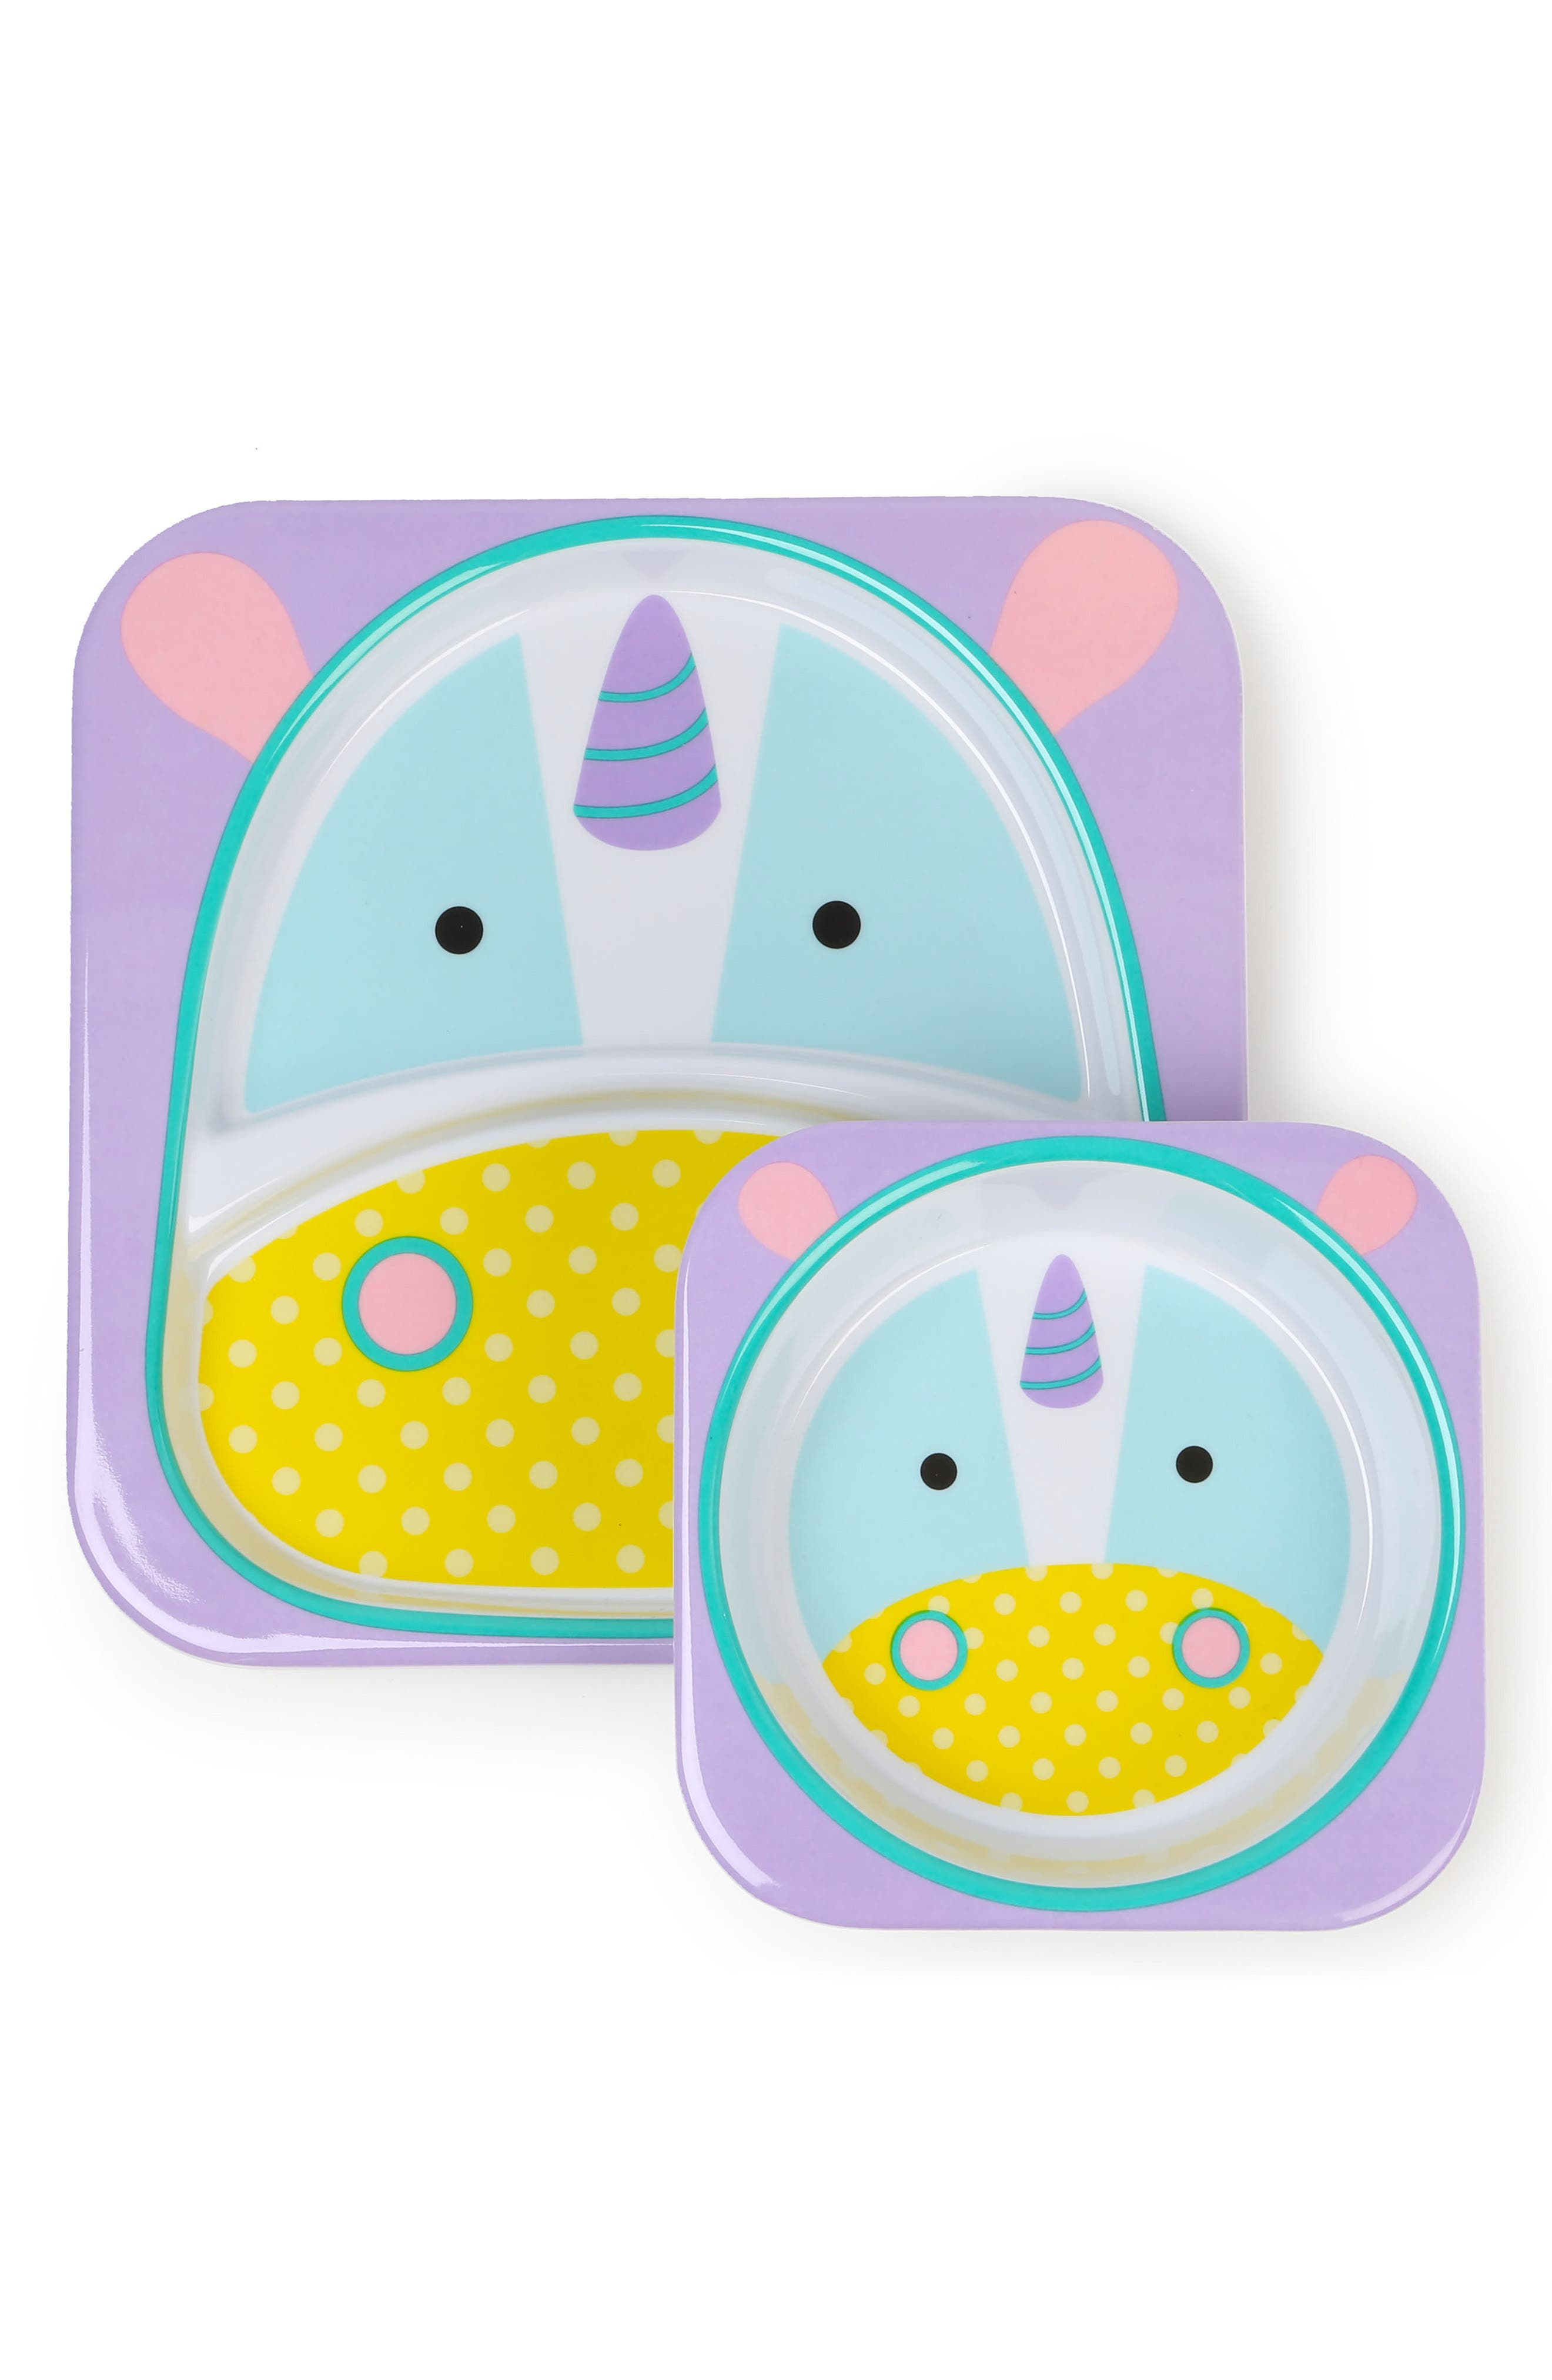 Butterfly Zoo Melamine Plate & Bowl Set, Main, color, 402